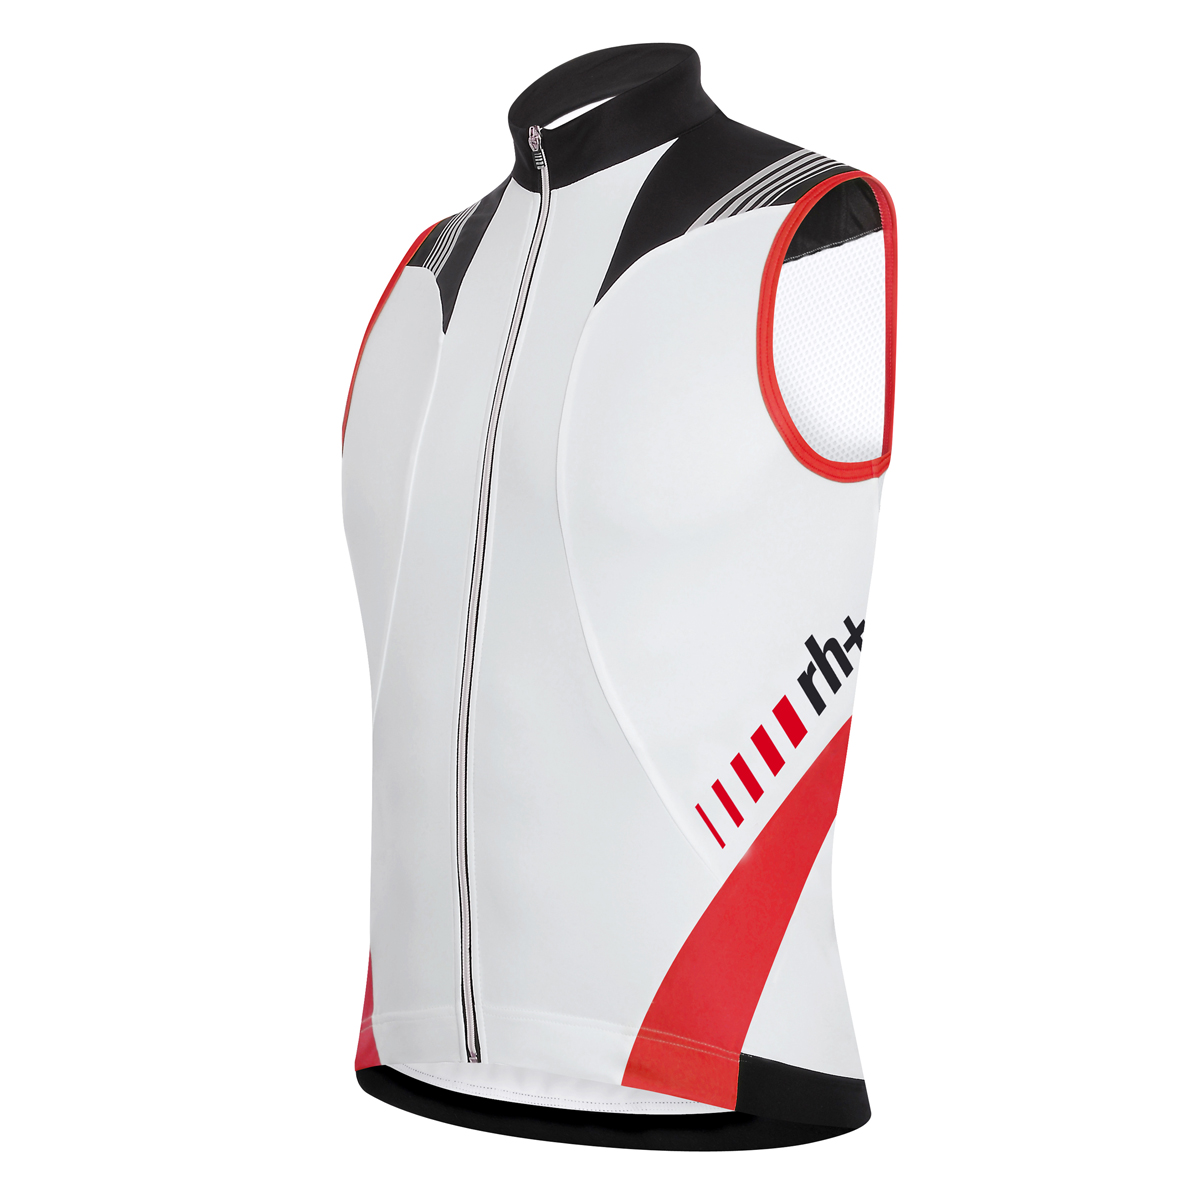 RH+ Vertex Sleeveless Jersey Fz white-black-red ECU0196-093